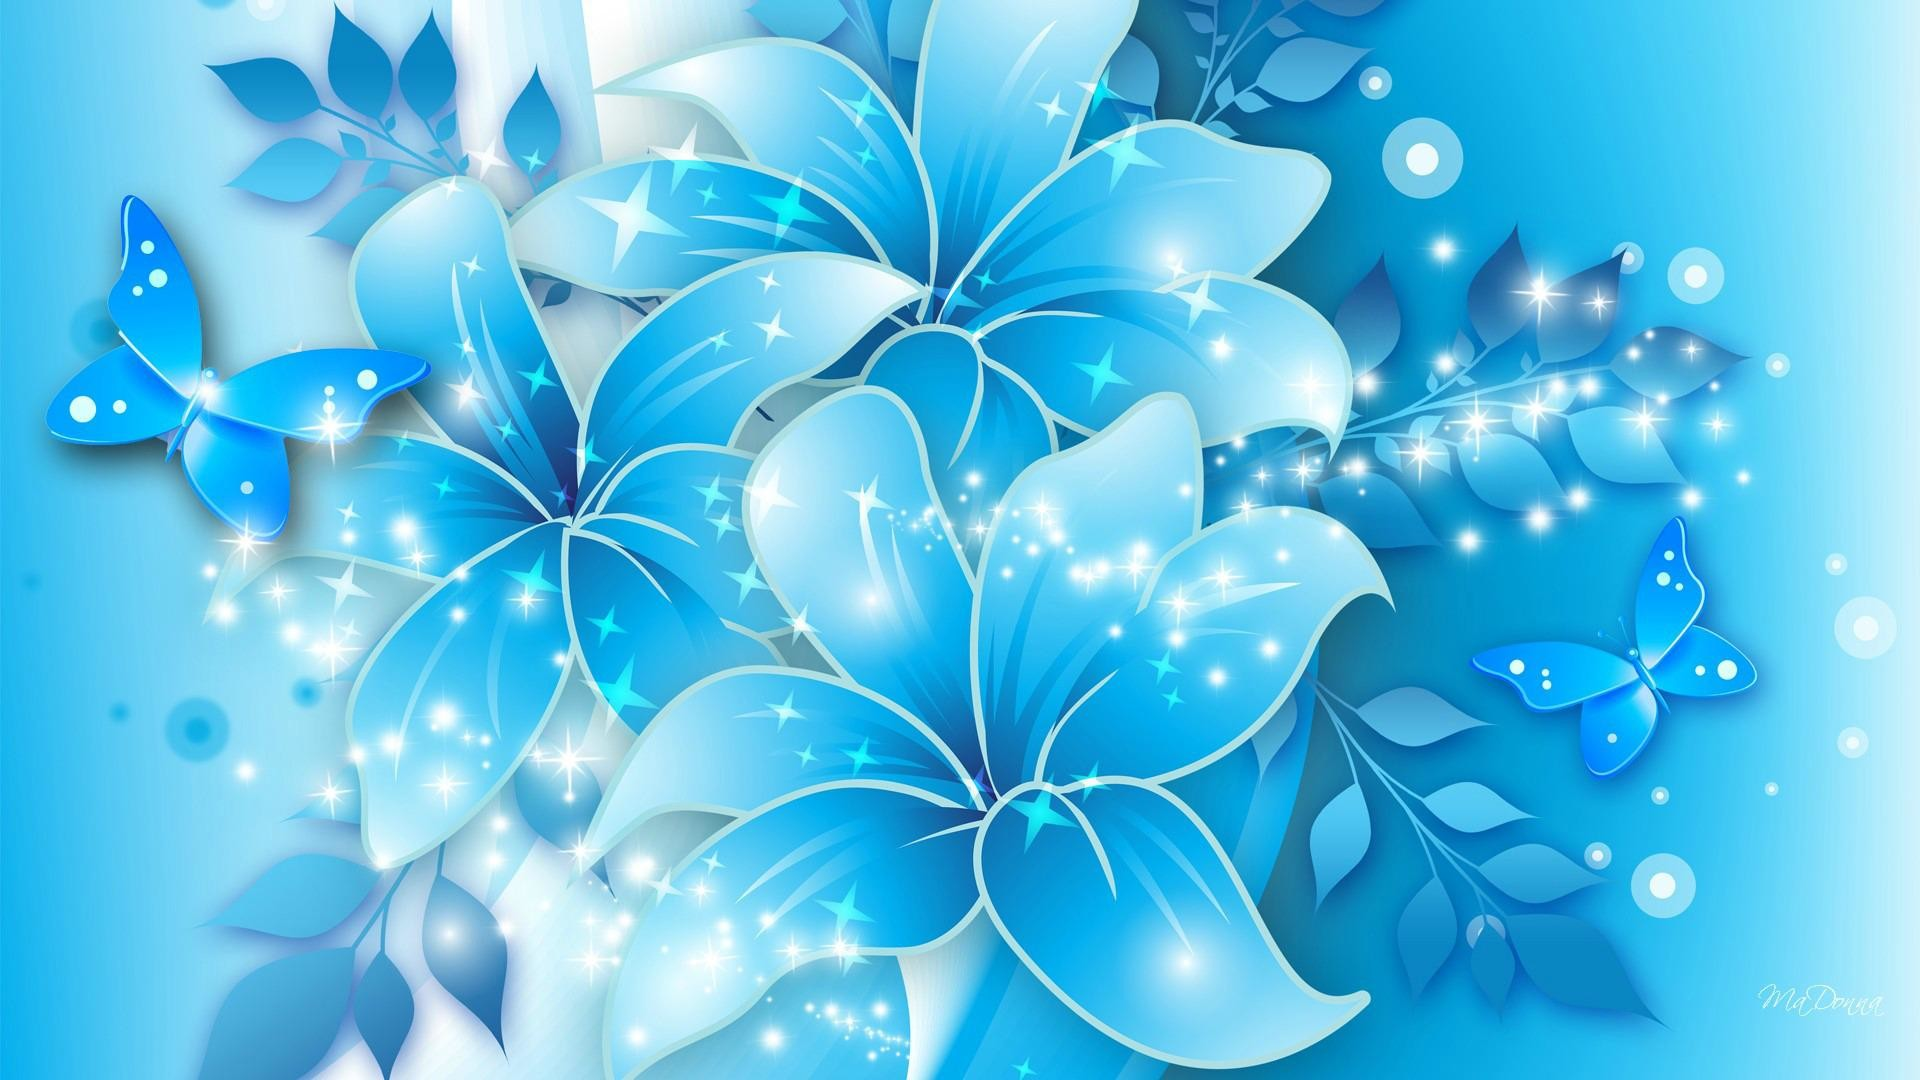 White And Blue Wallpapers Group Light Blue Wallpaper Wallpapers)